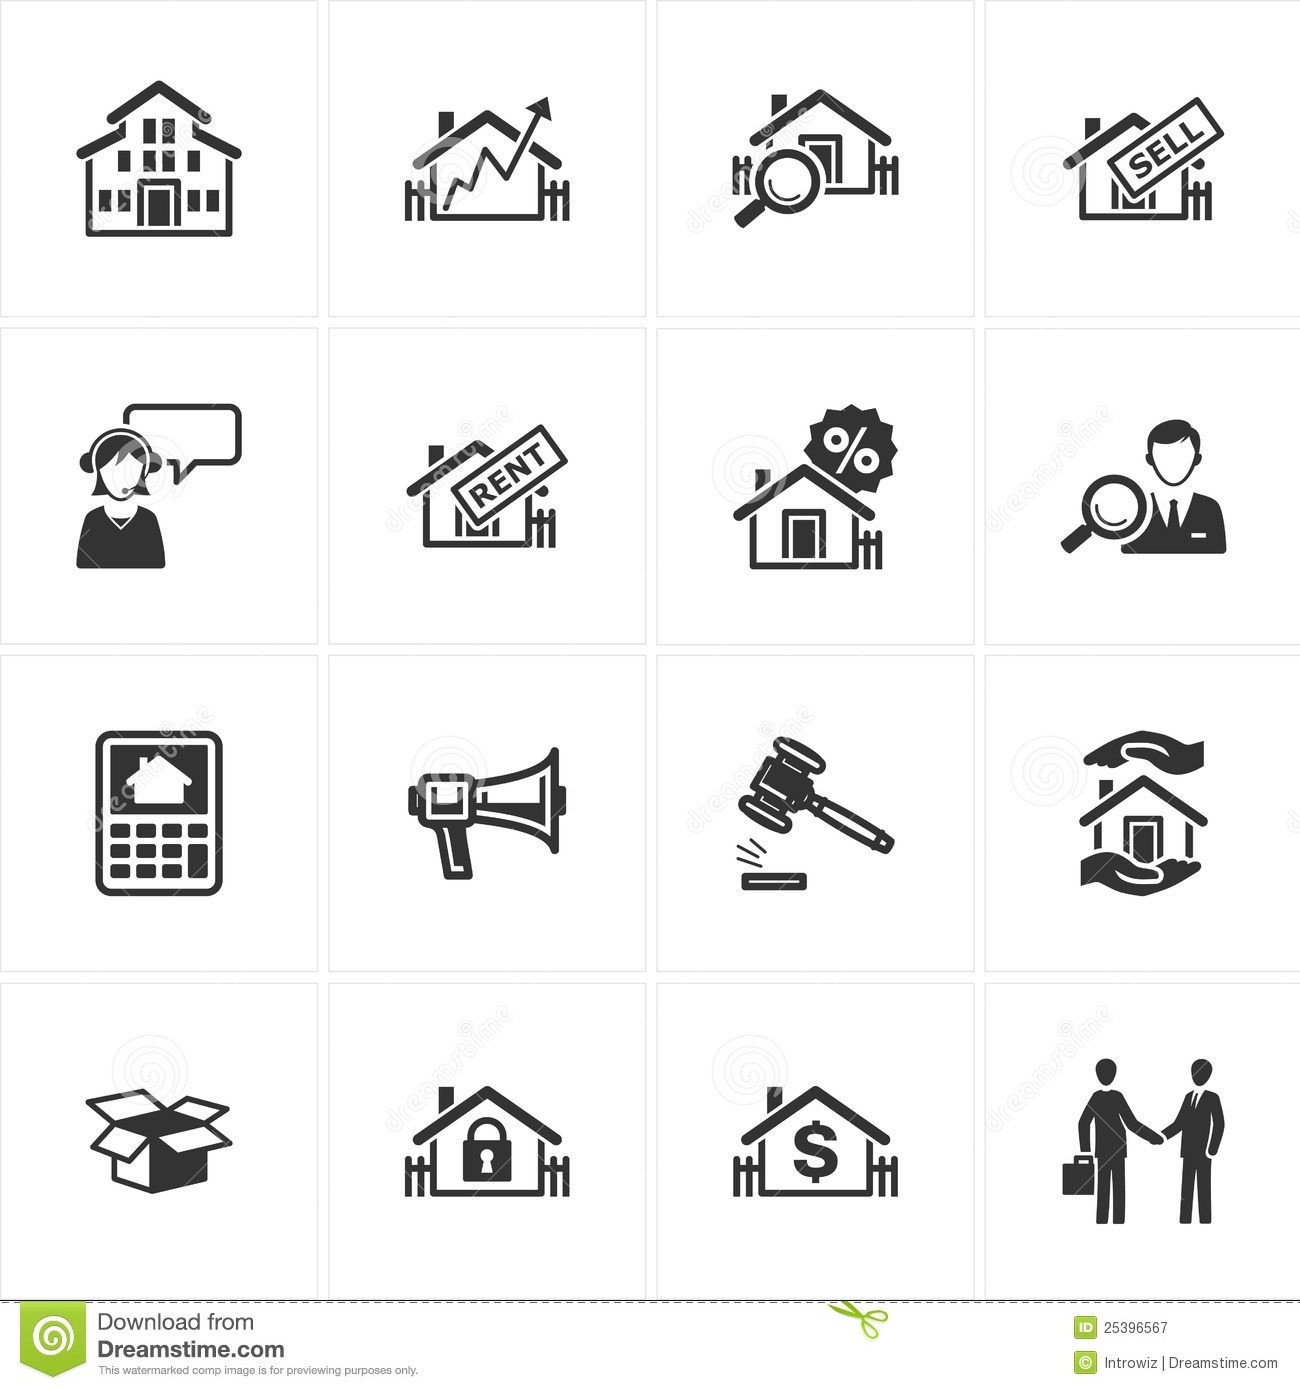 5 Real Estate Web Icon Buttons Images